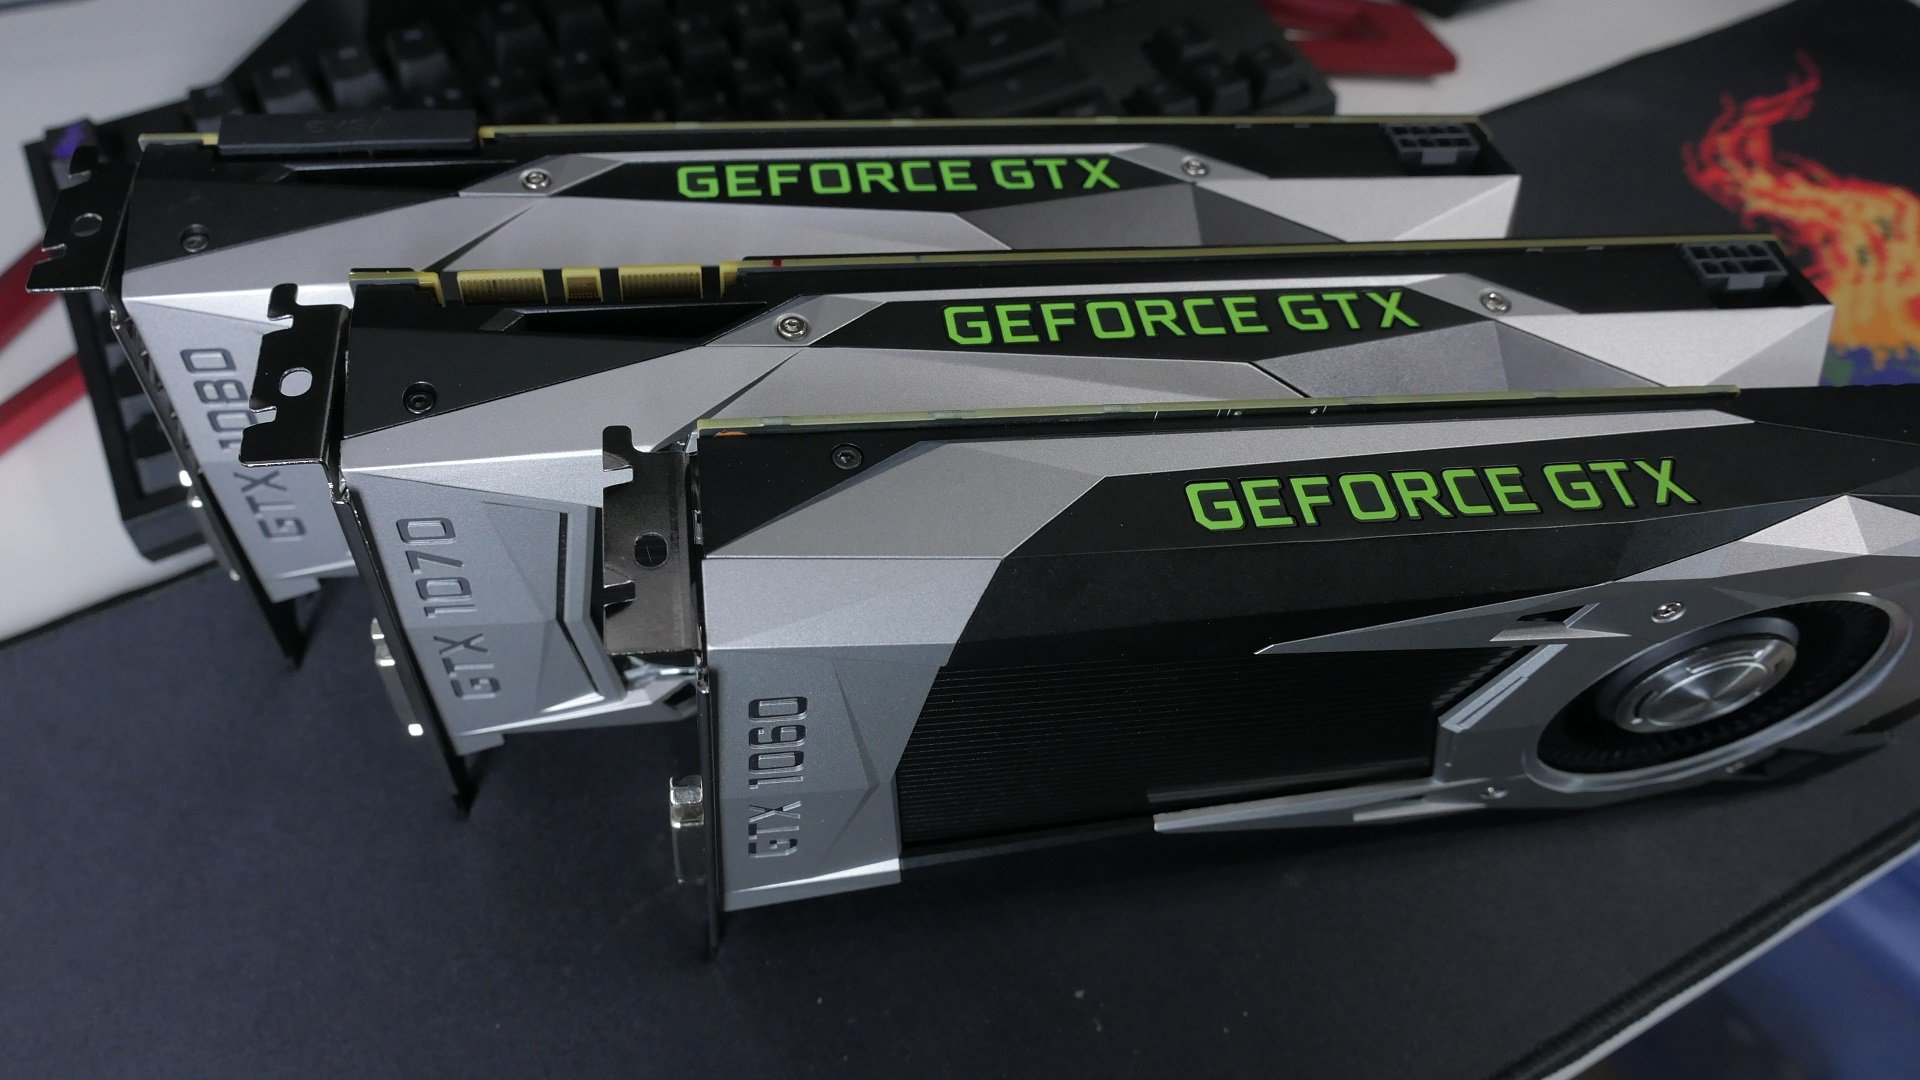 GTX 1080 vs 1070, 1060 GPU Benchmarks in 4k, 1440p, and